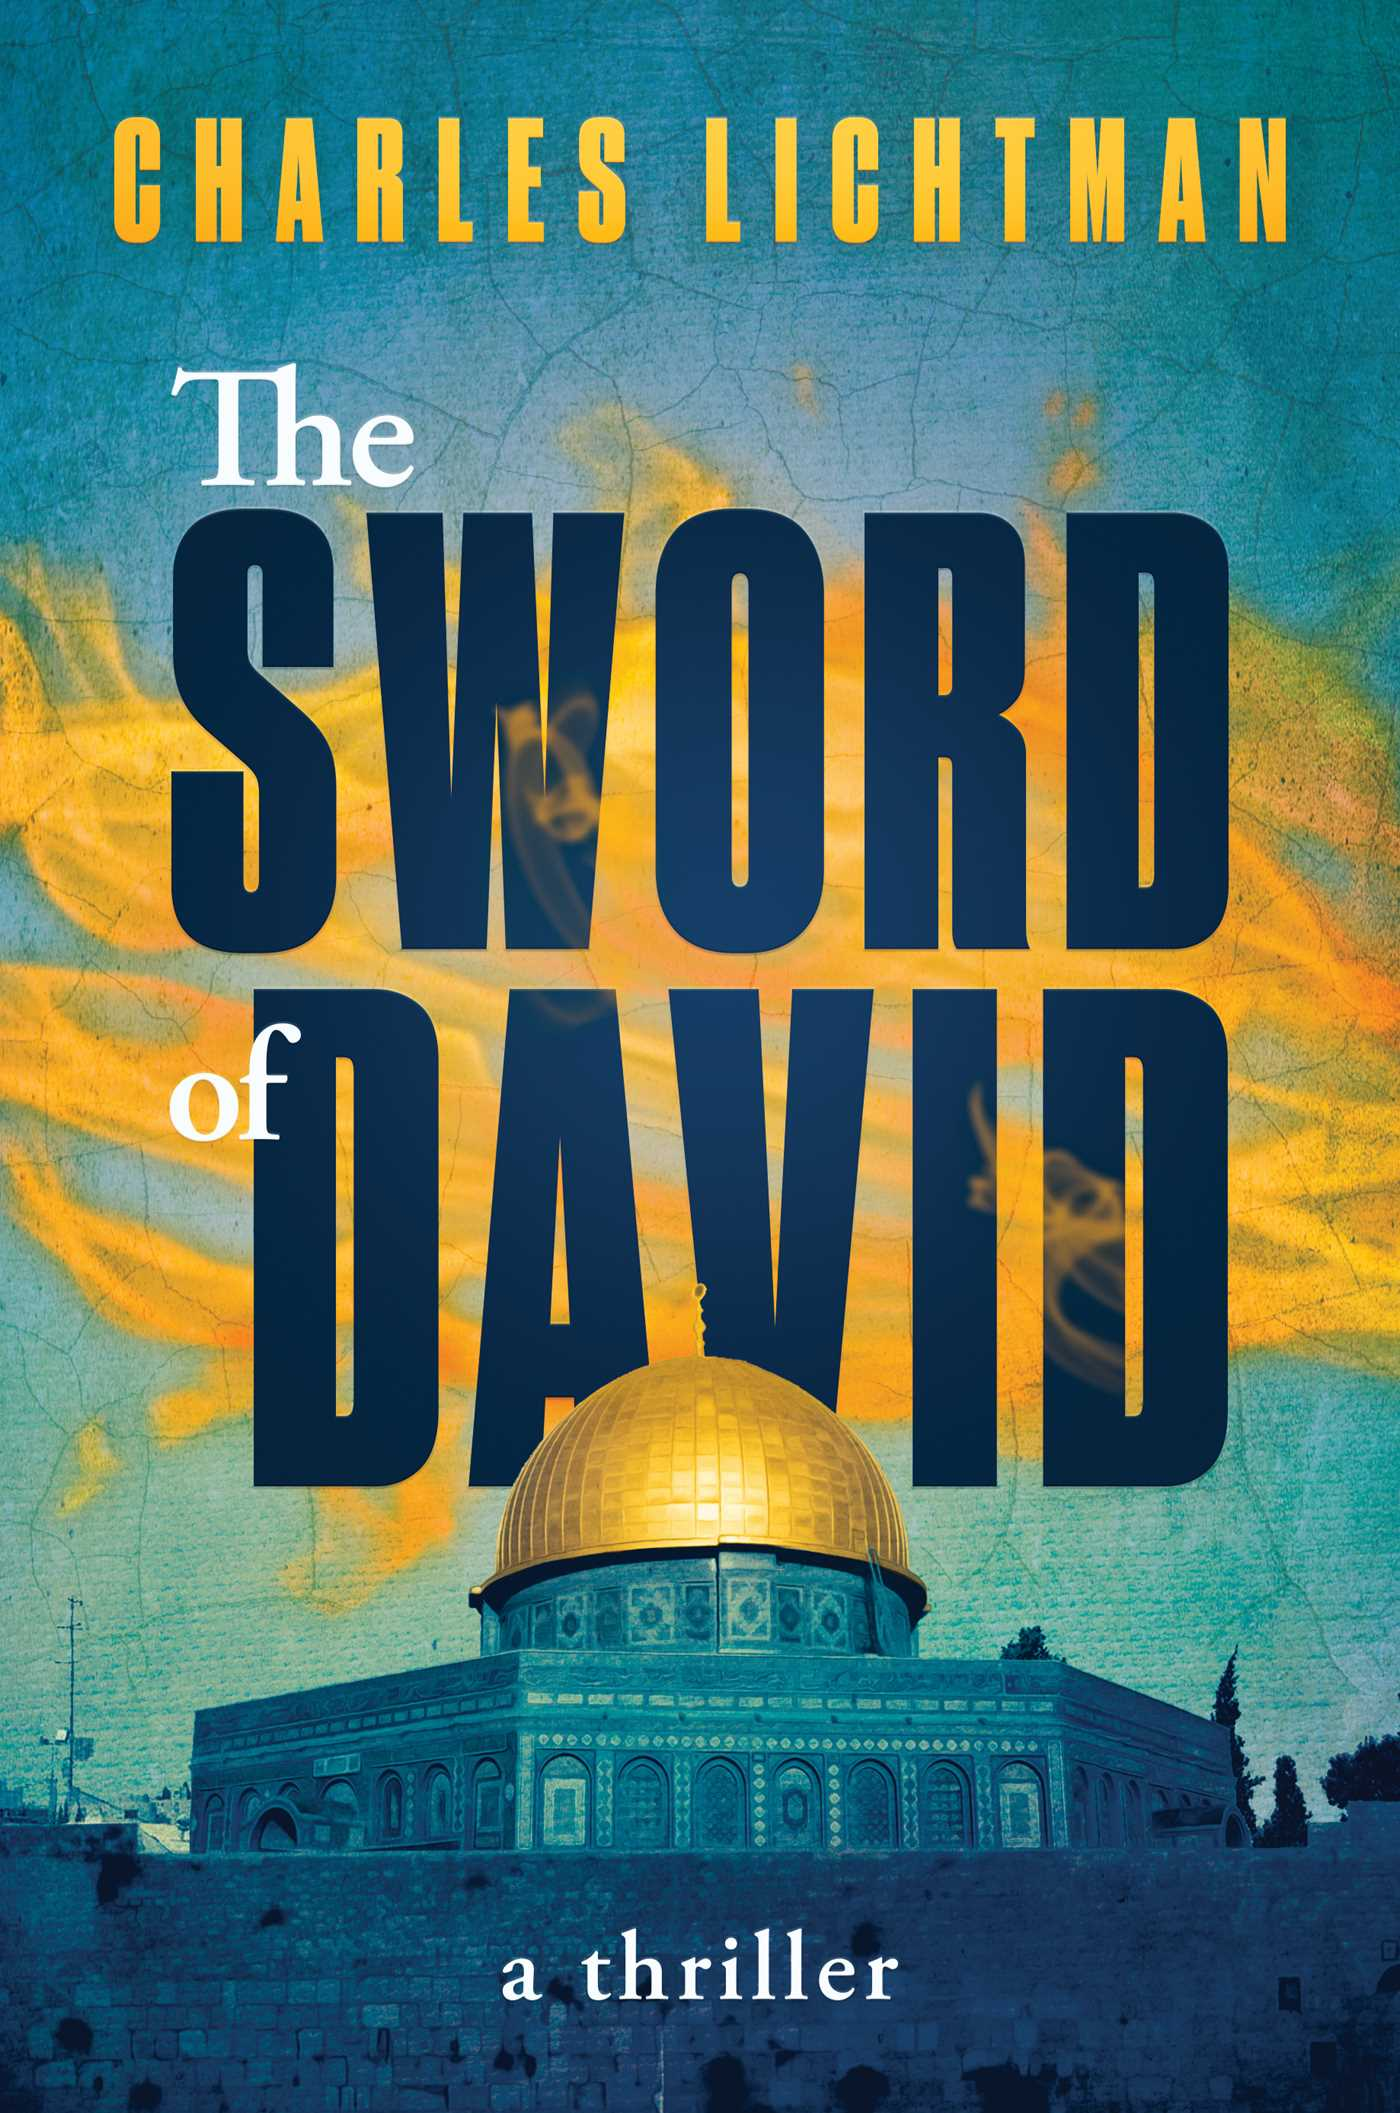 The Sword of David  by Charles Lichtman